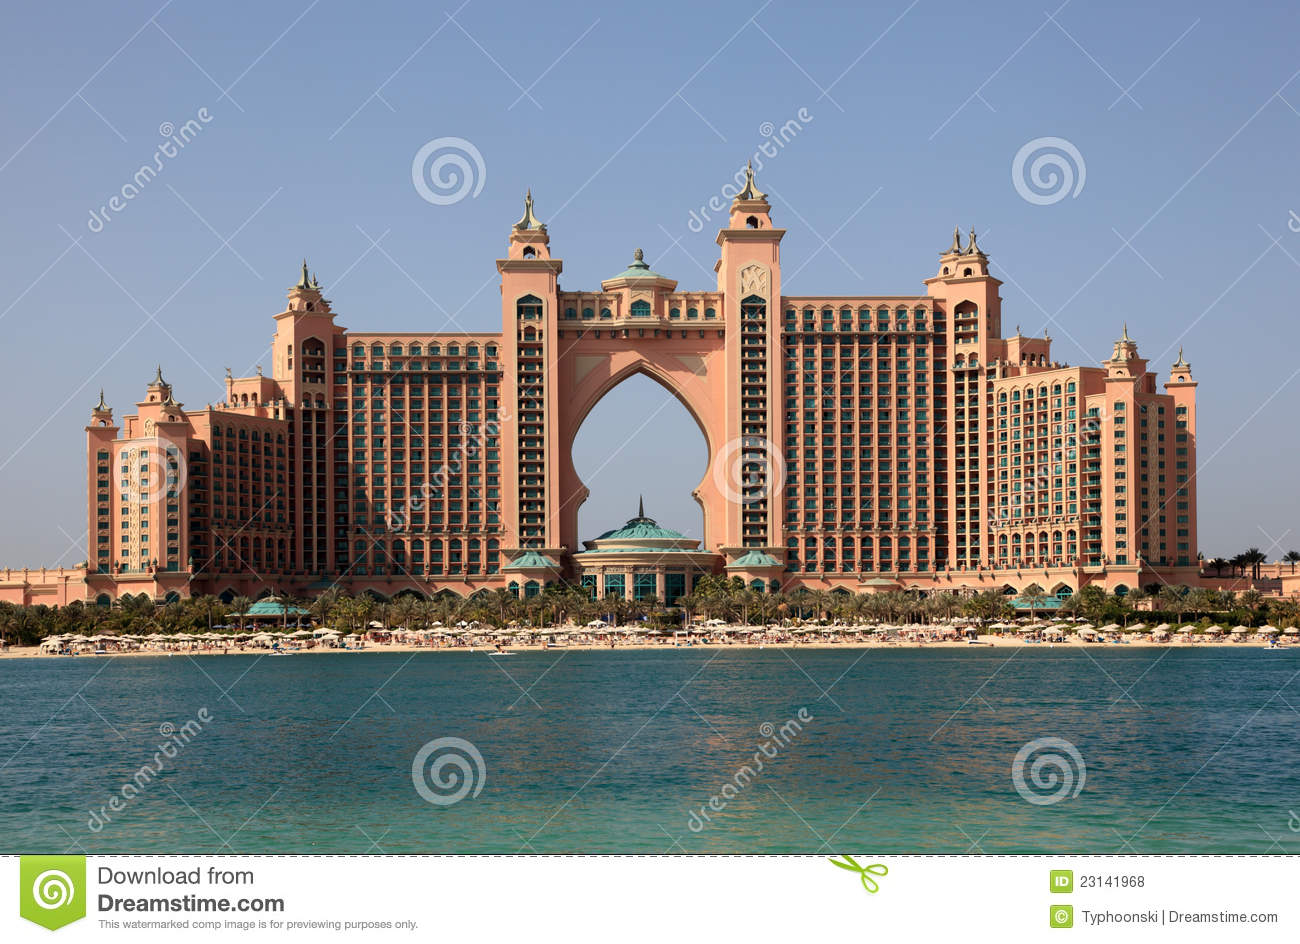 Atlantis The Palm Hotel In Dubai Stock Photo Image Of Jumeirah